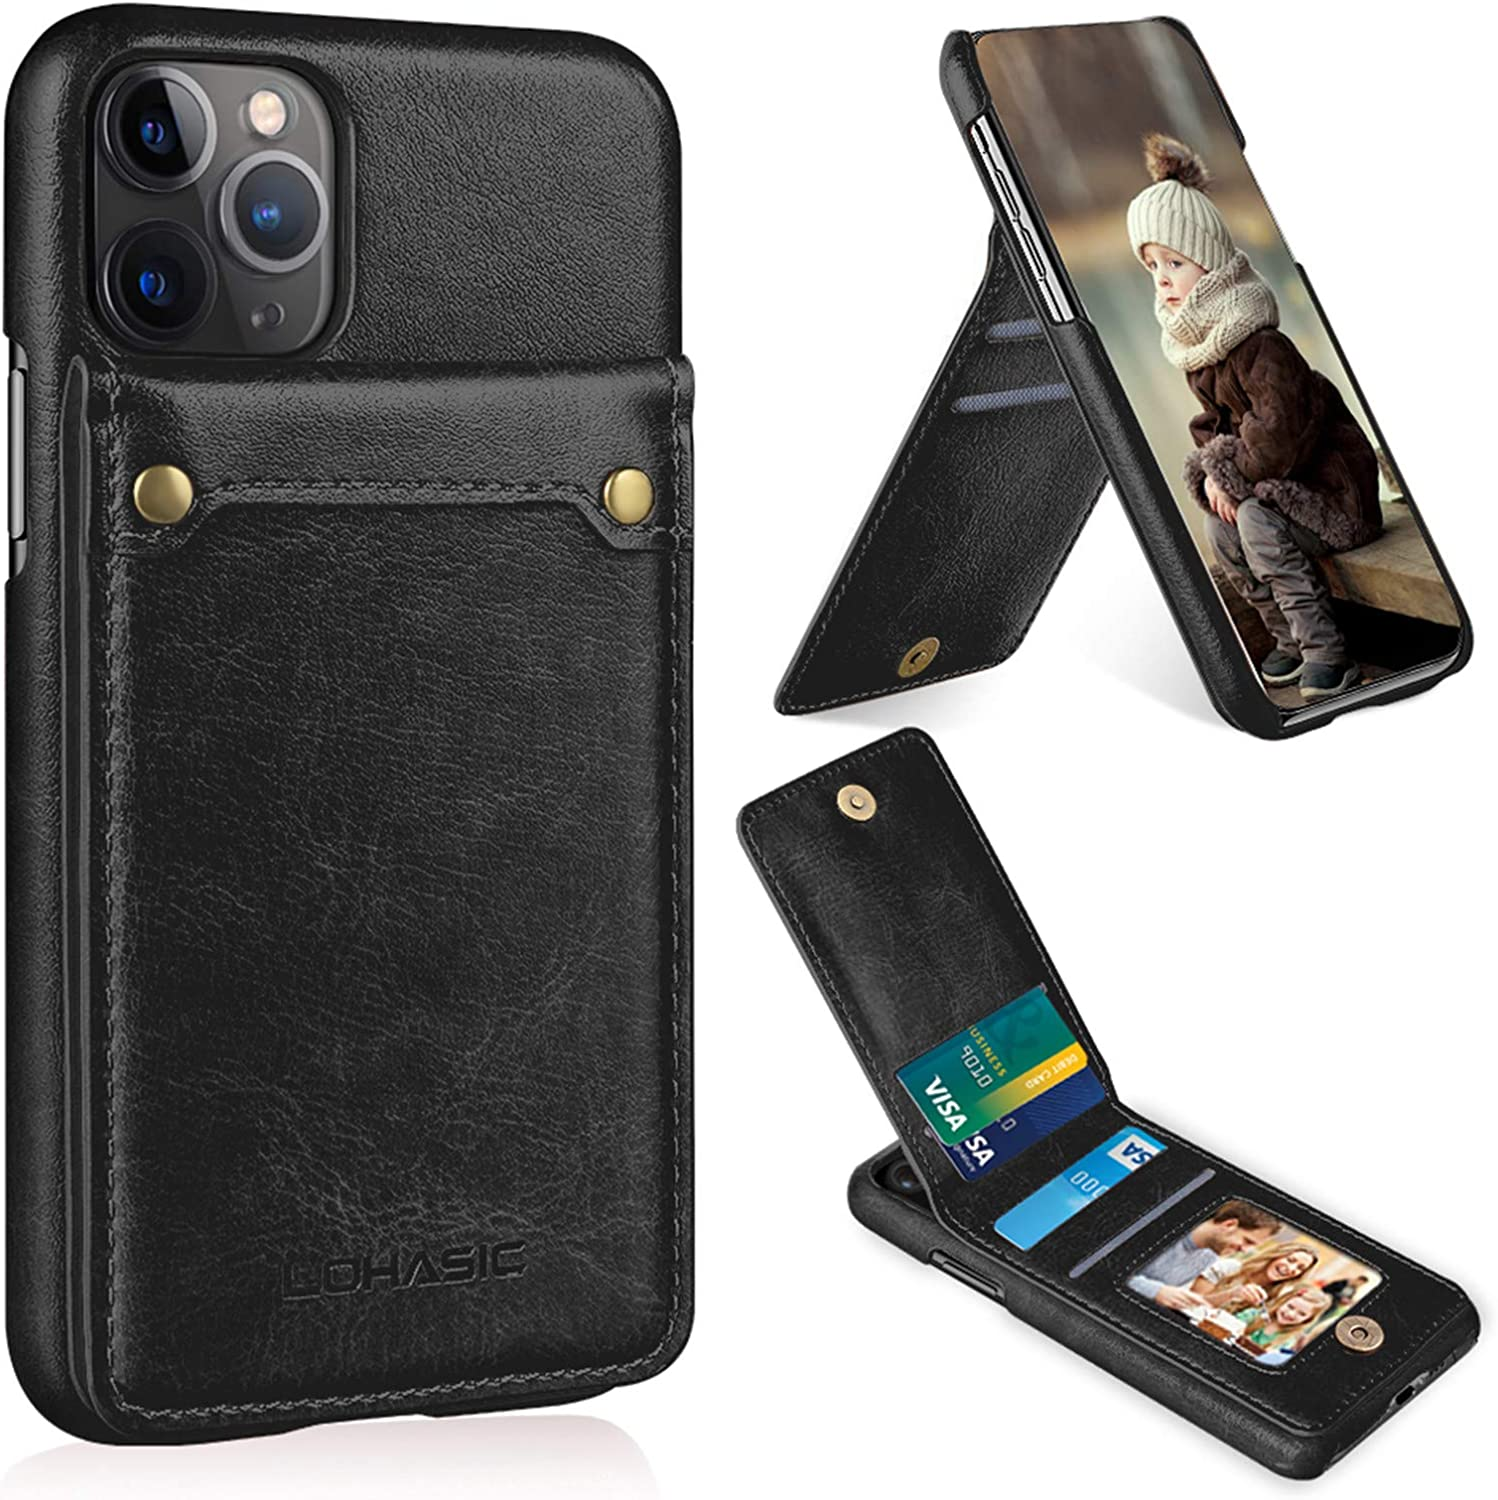 PU Leather Flip Cover Compatible with iPhone 11 Pro Max Elegant black Wallet Case for iPhone 11 Pro Max